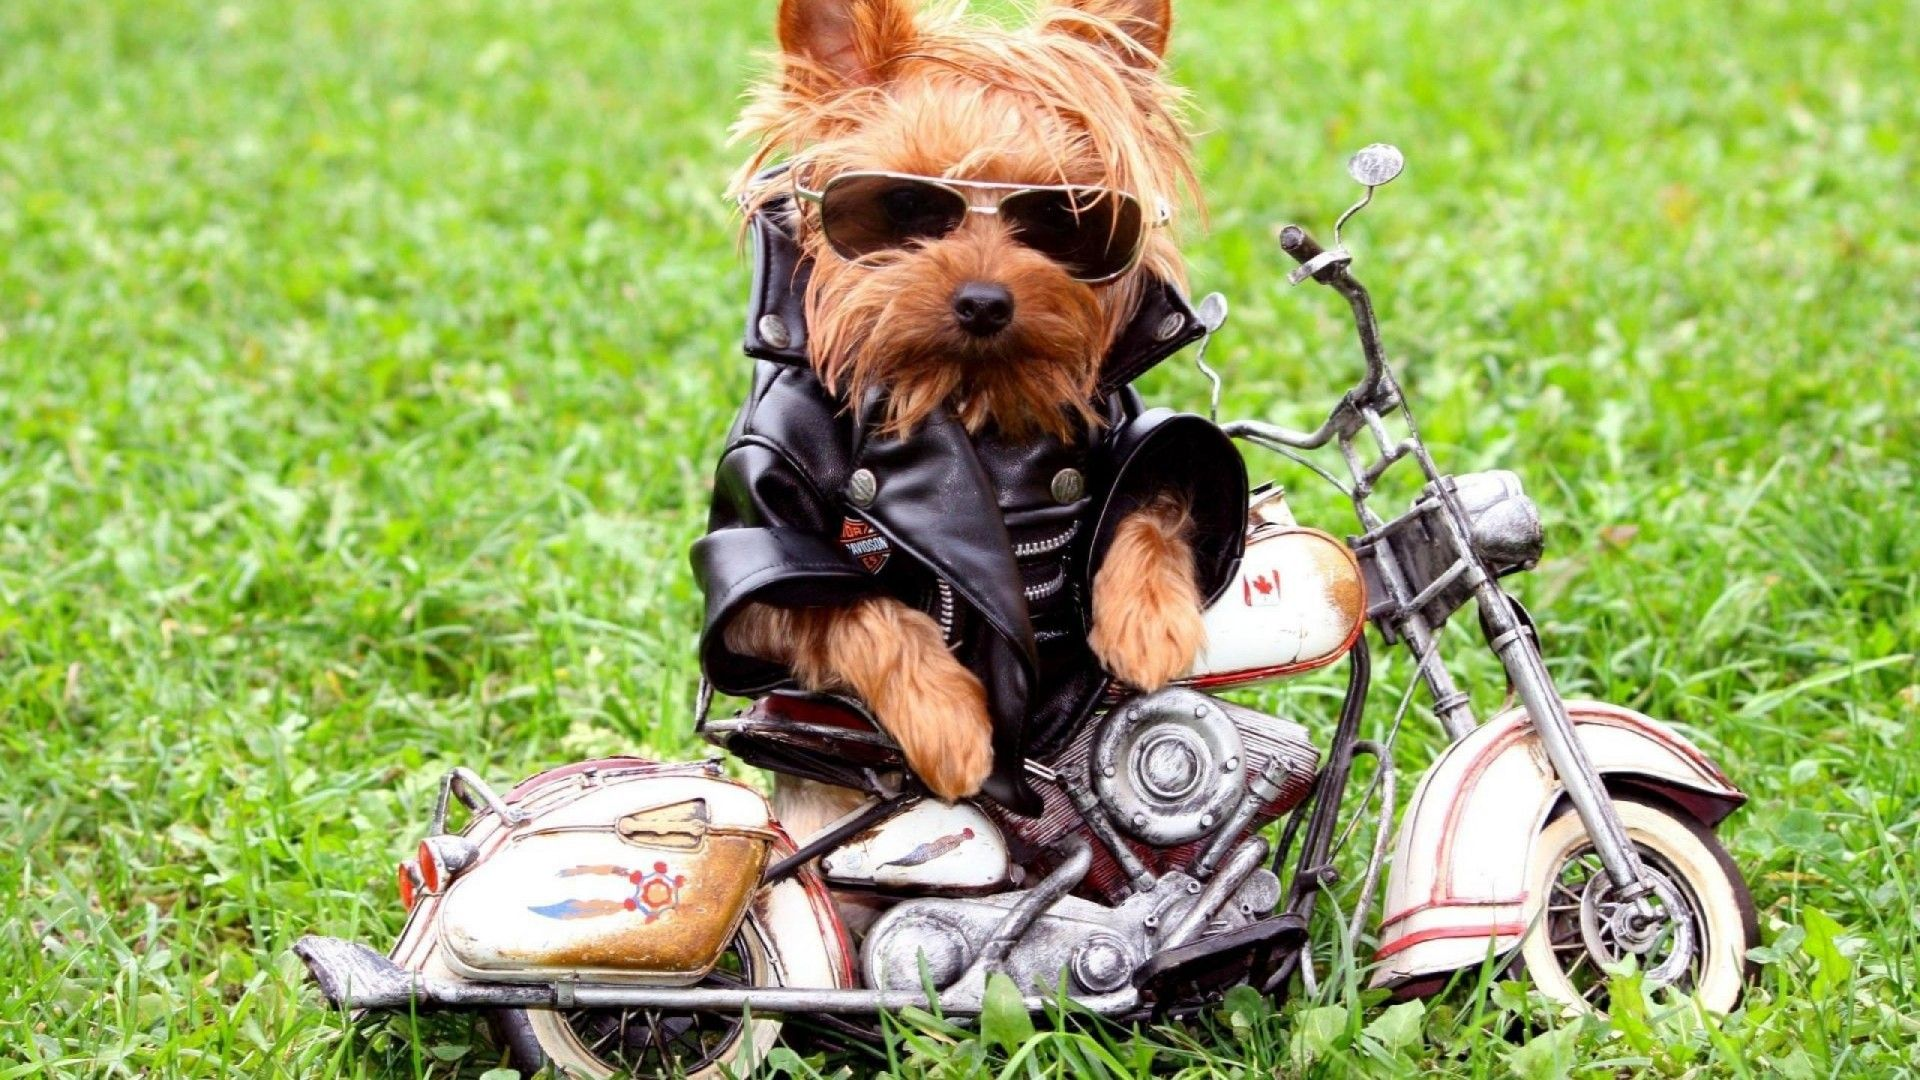 1920x1080 Funny-Dog-On-The-Motorcycle-Wallpaper-HD-free-for-desktop ...